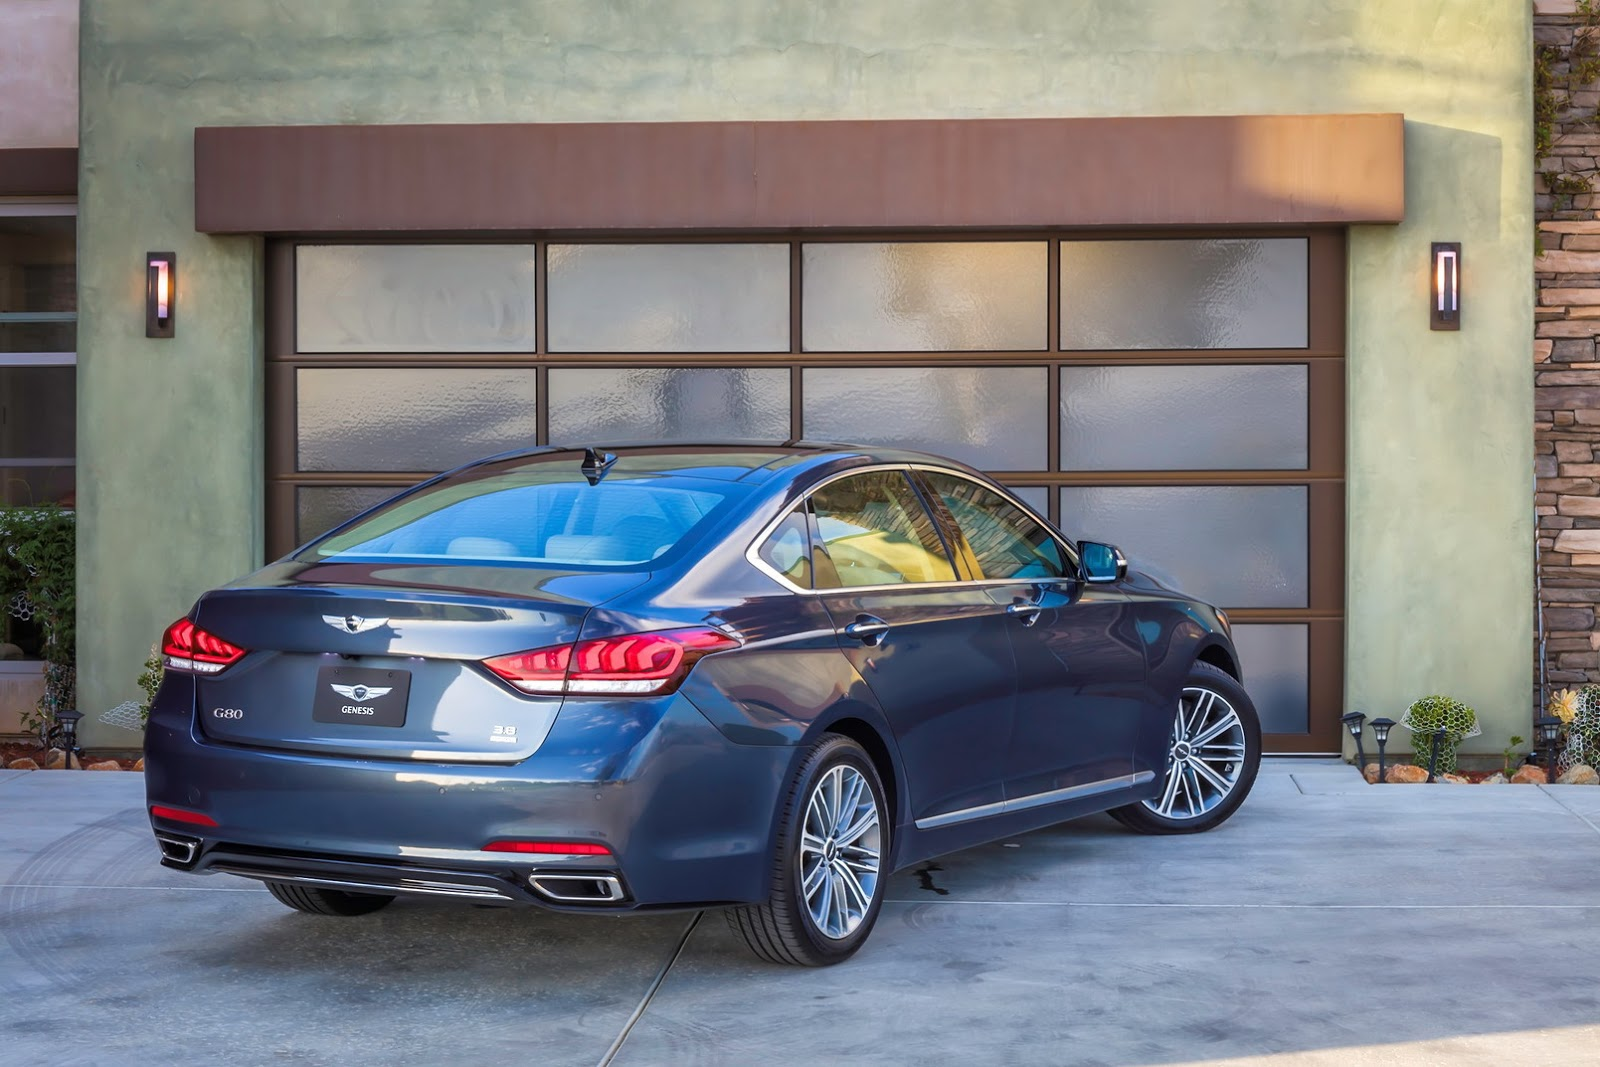 genesis turbocharges updated 2018 g80 with new sport model in la carscoops. Black Bedroom Furniture Sets. Home Design Ideas